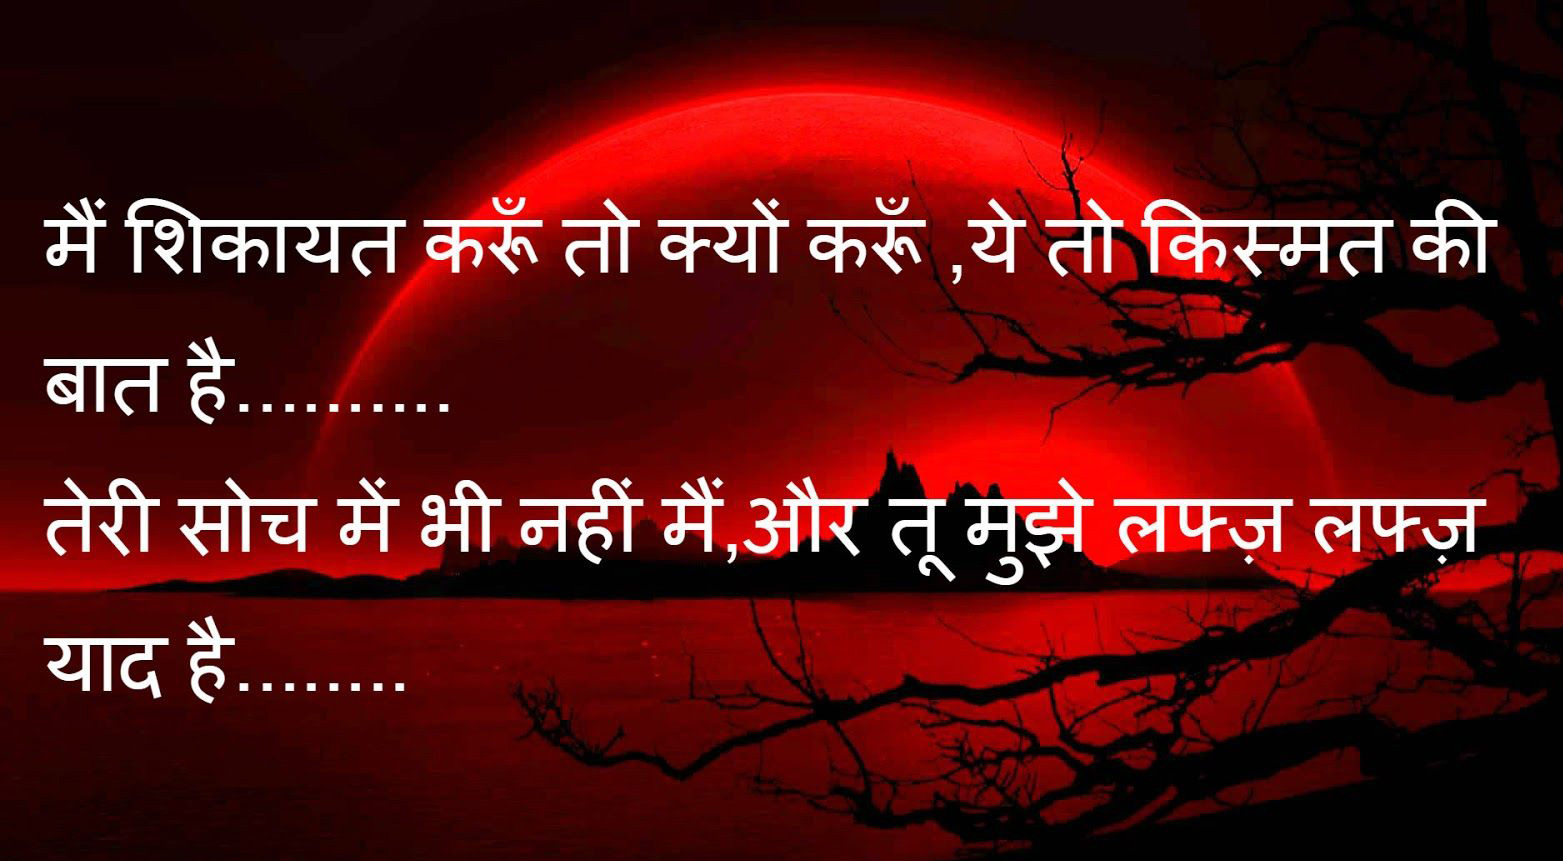 हिंदी सैड स्टेटस Hindi sad images Wallpaper Pictures Download